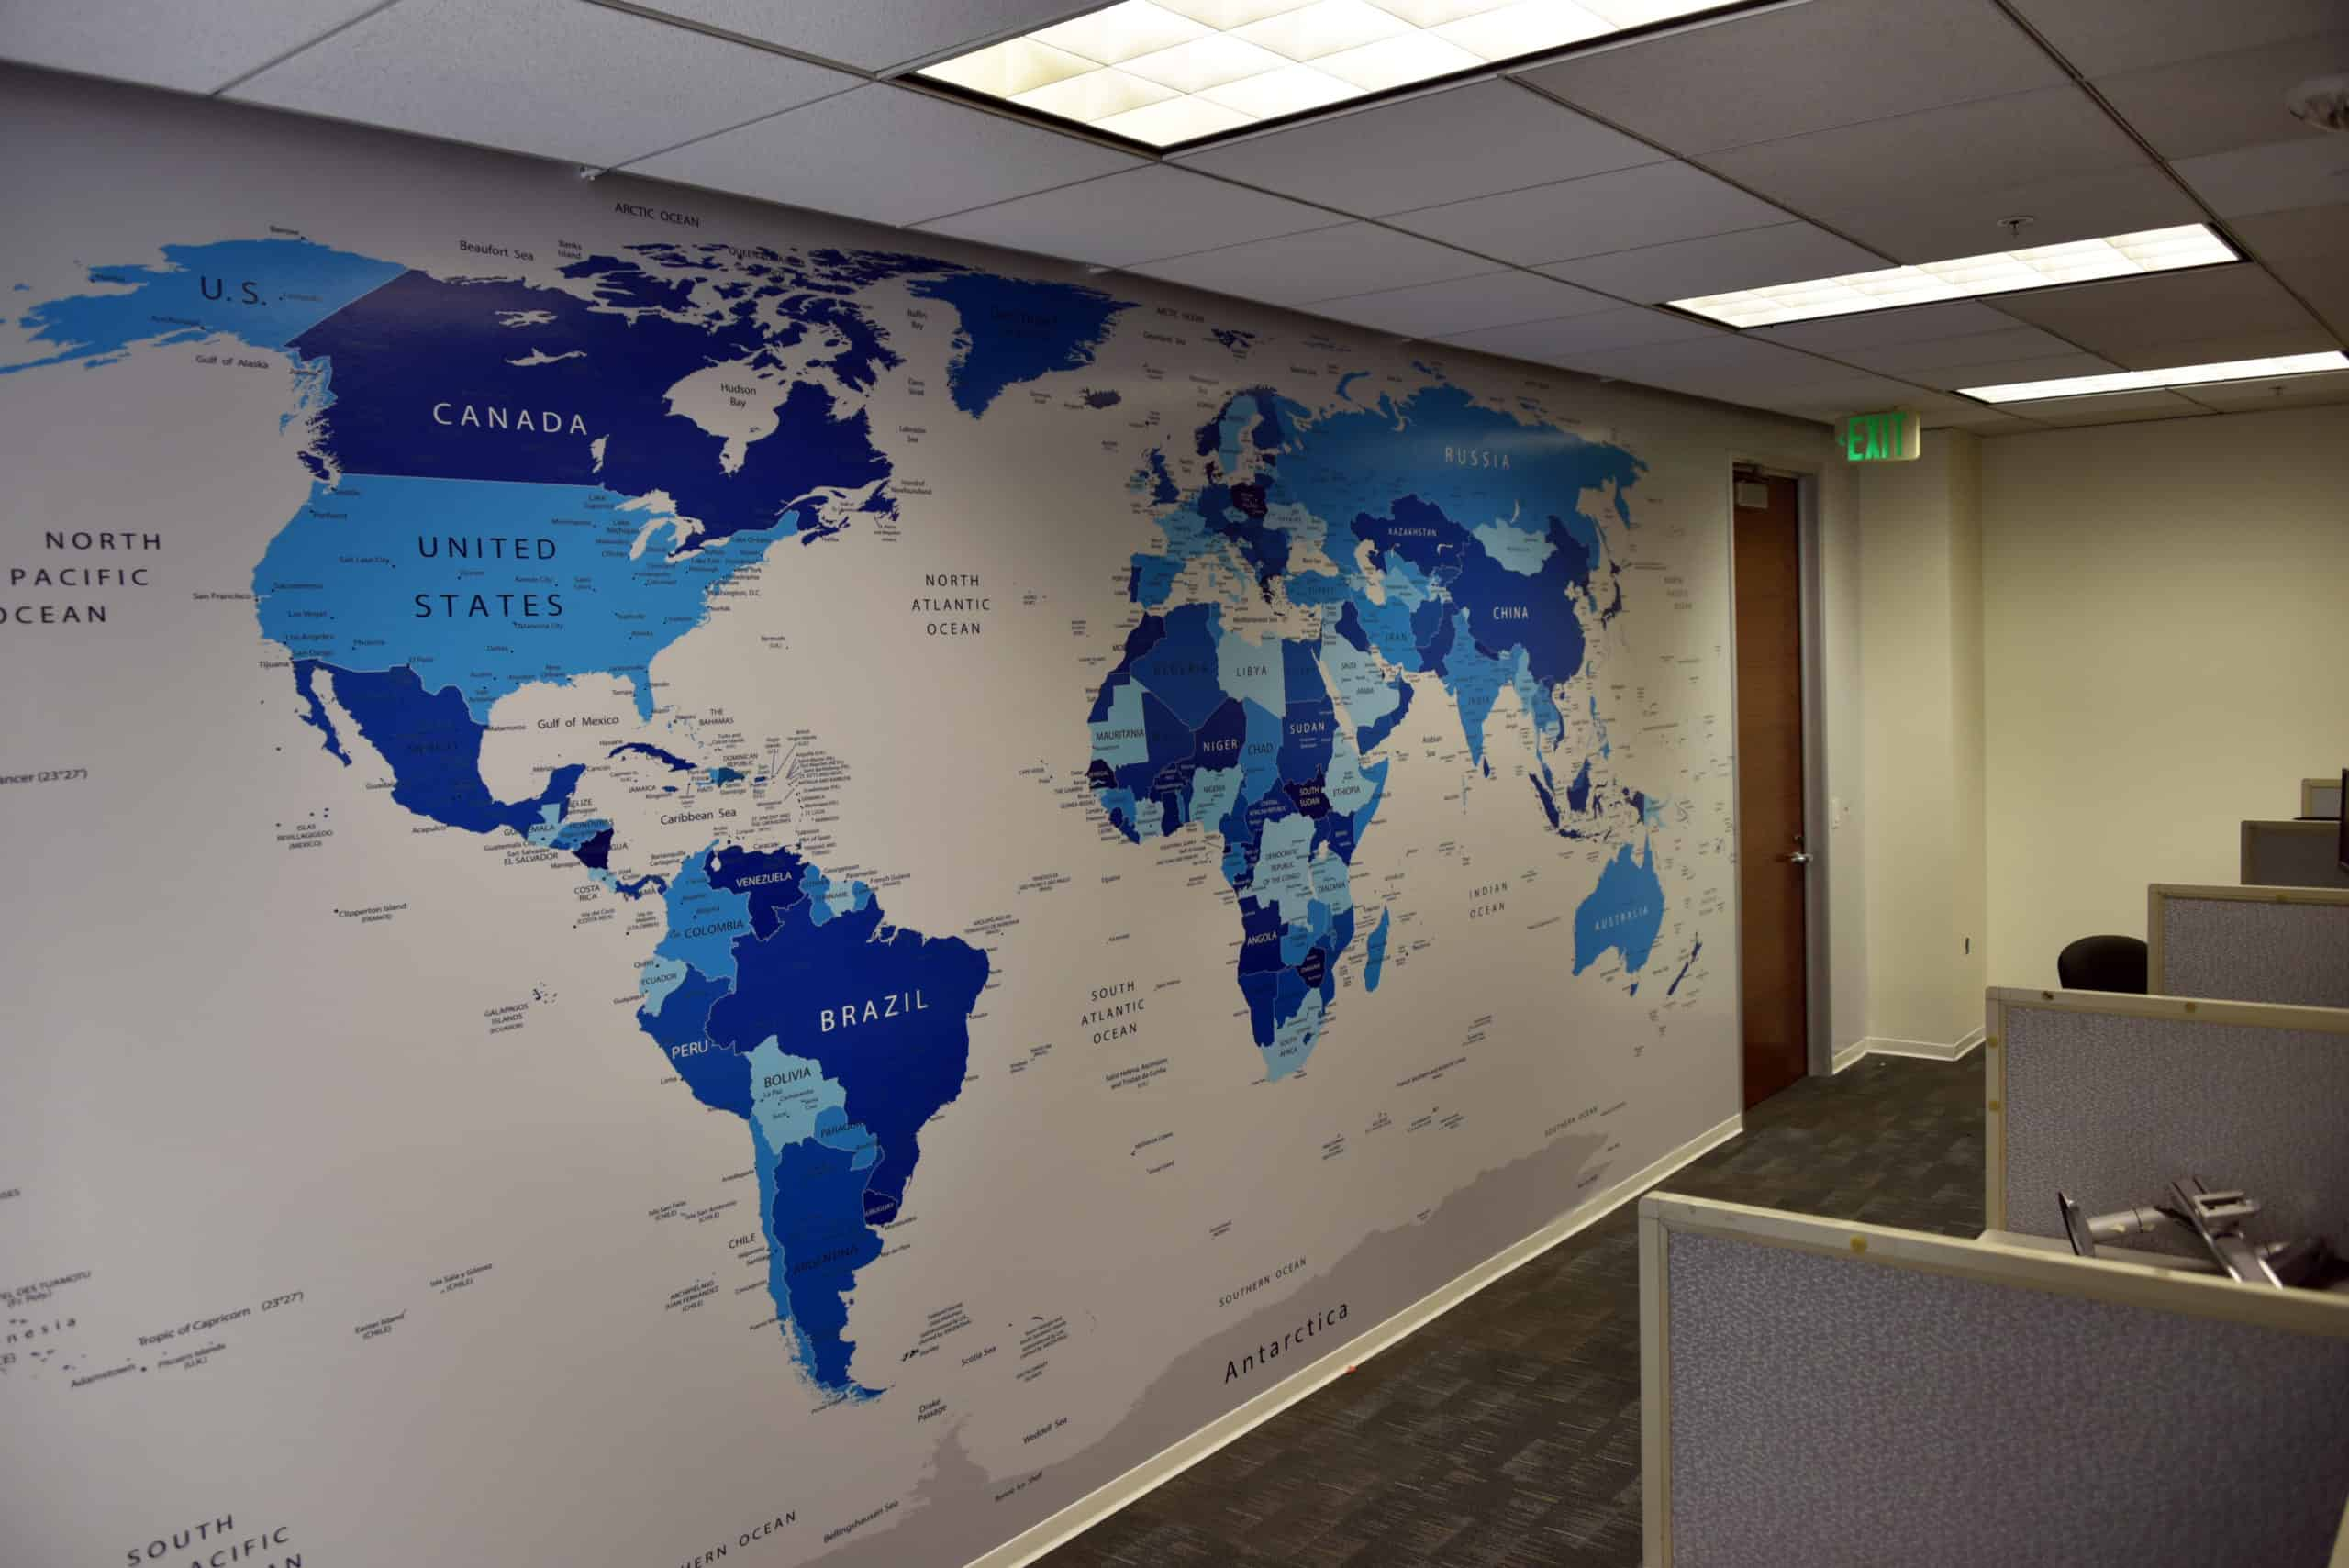 This mural of all the countries was done by Platon Graphics